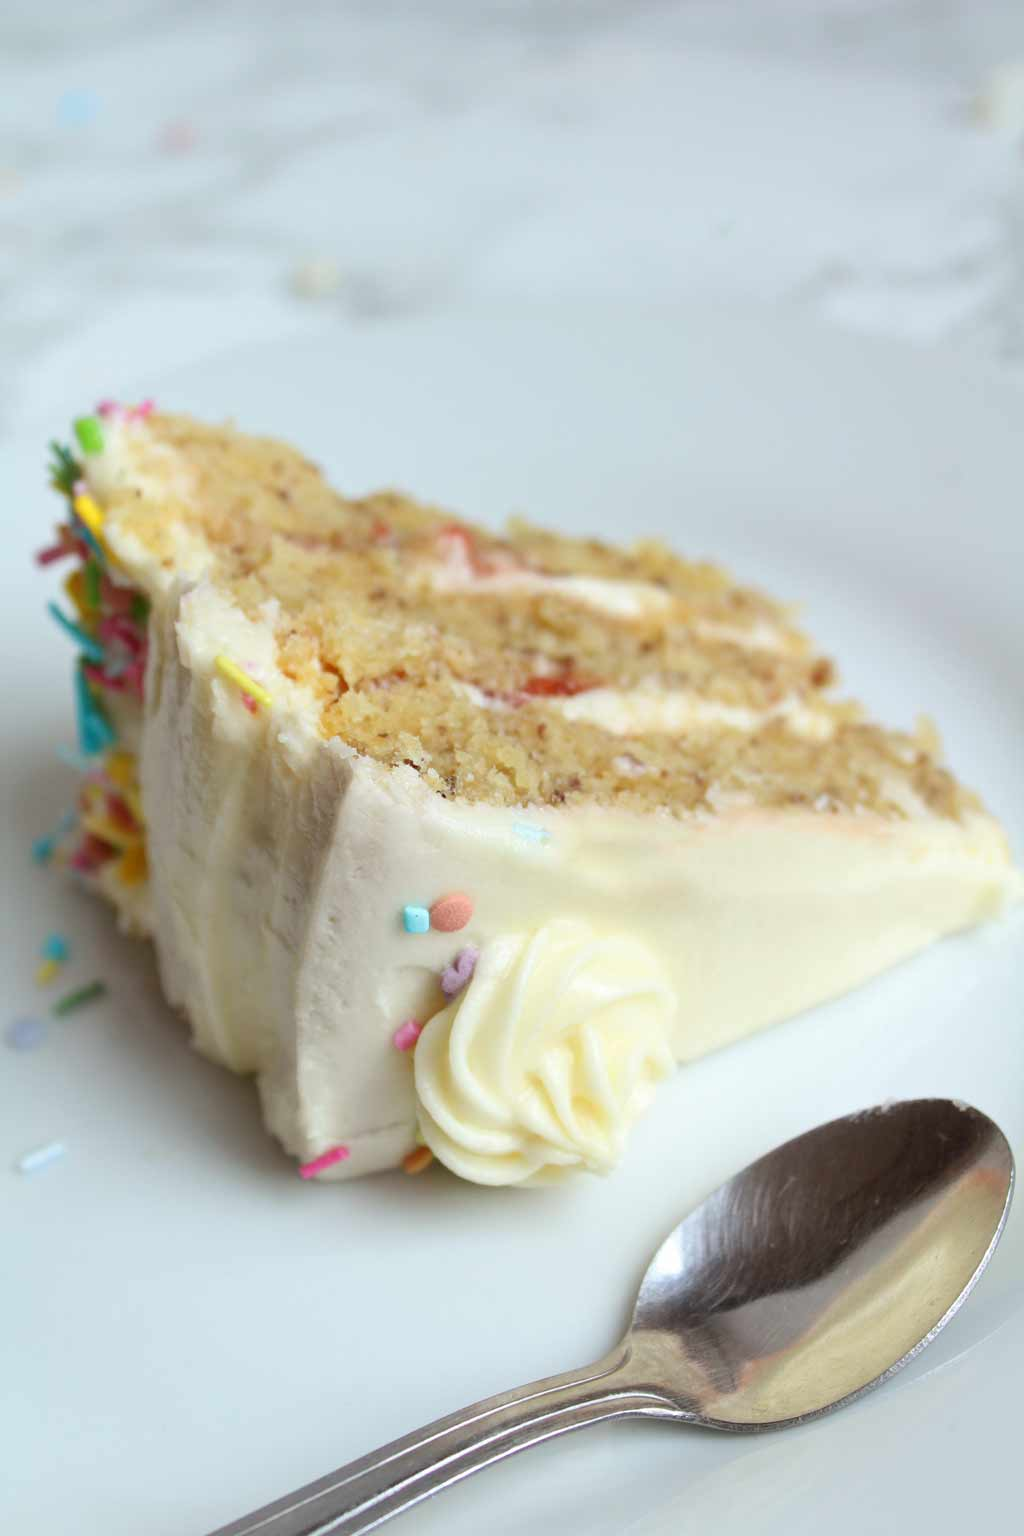 a slice of vegan birthday cake and a spoon on a small plate